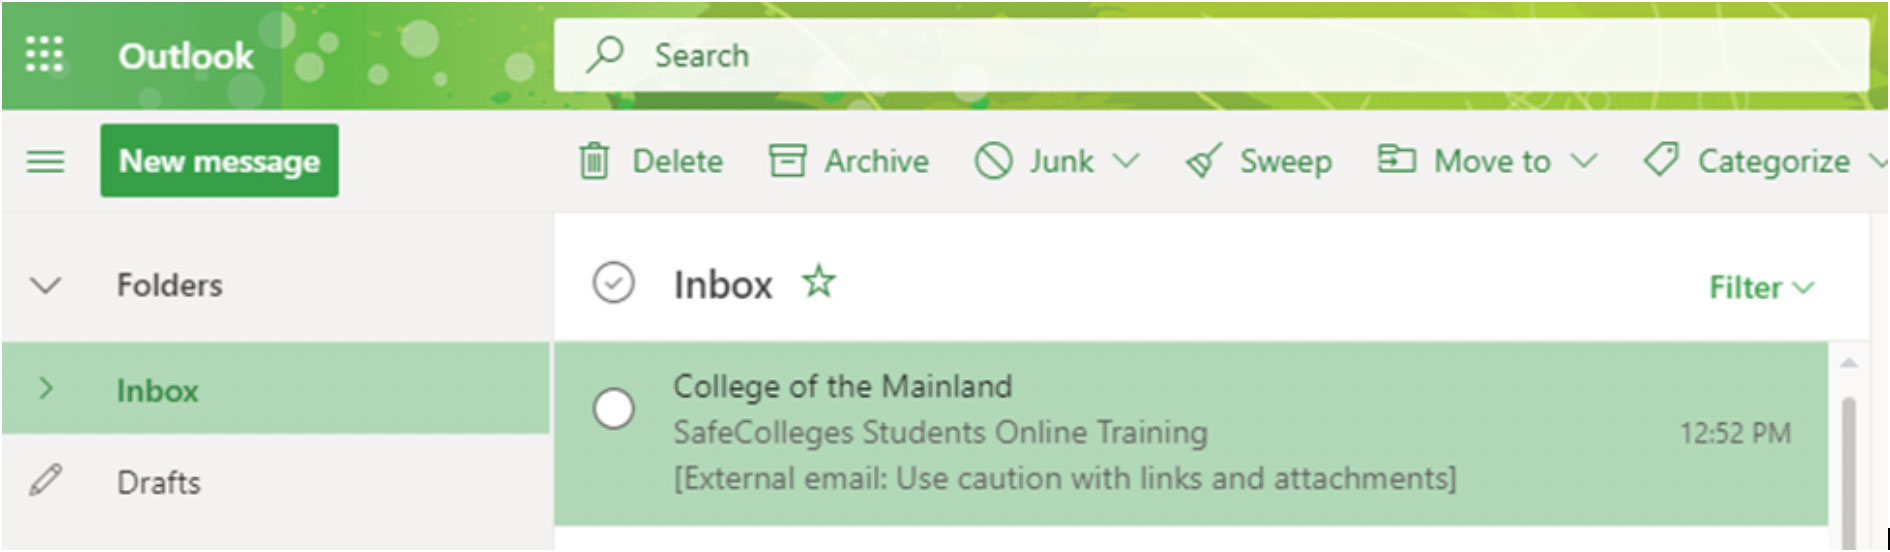 Screenshot of email from SafeColleges